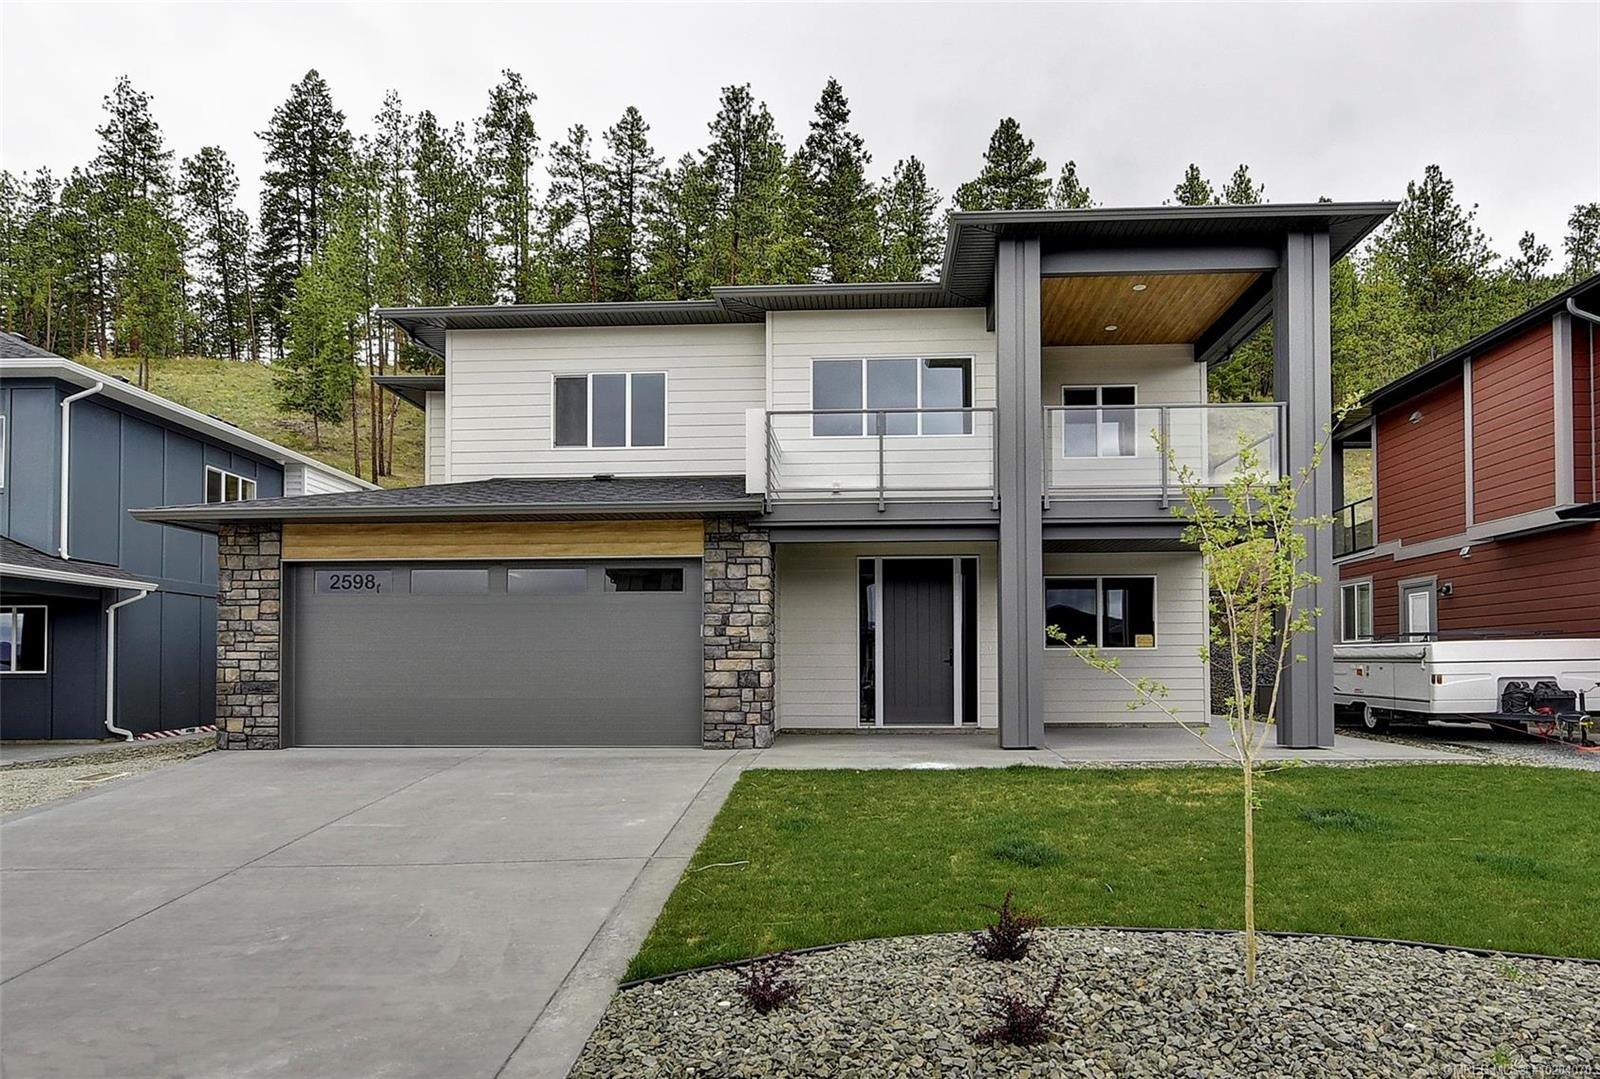 Removed: 2598 Crown Crest Drive, West Kelowna, BC - Removed on 2020-05-19 18:06:12